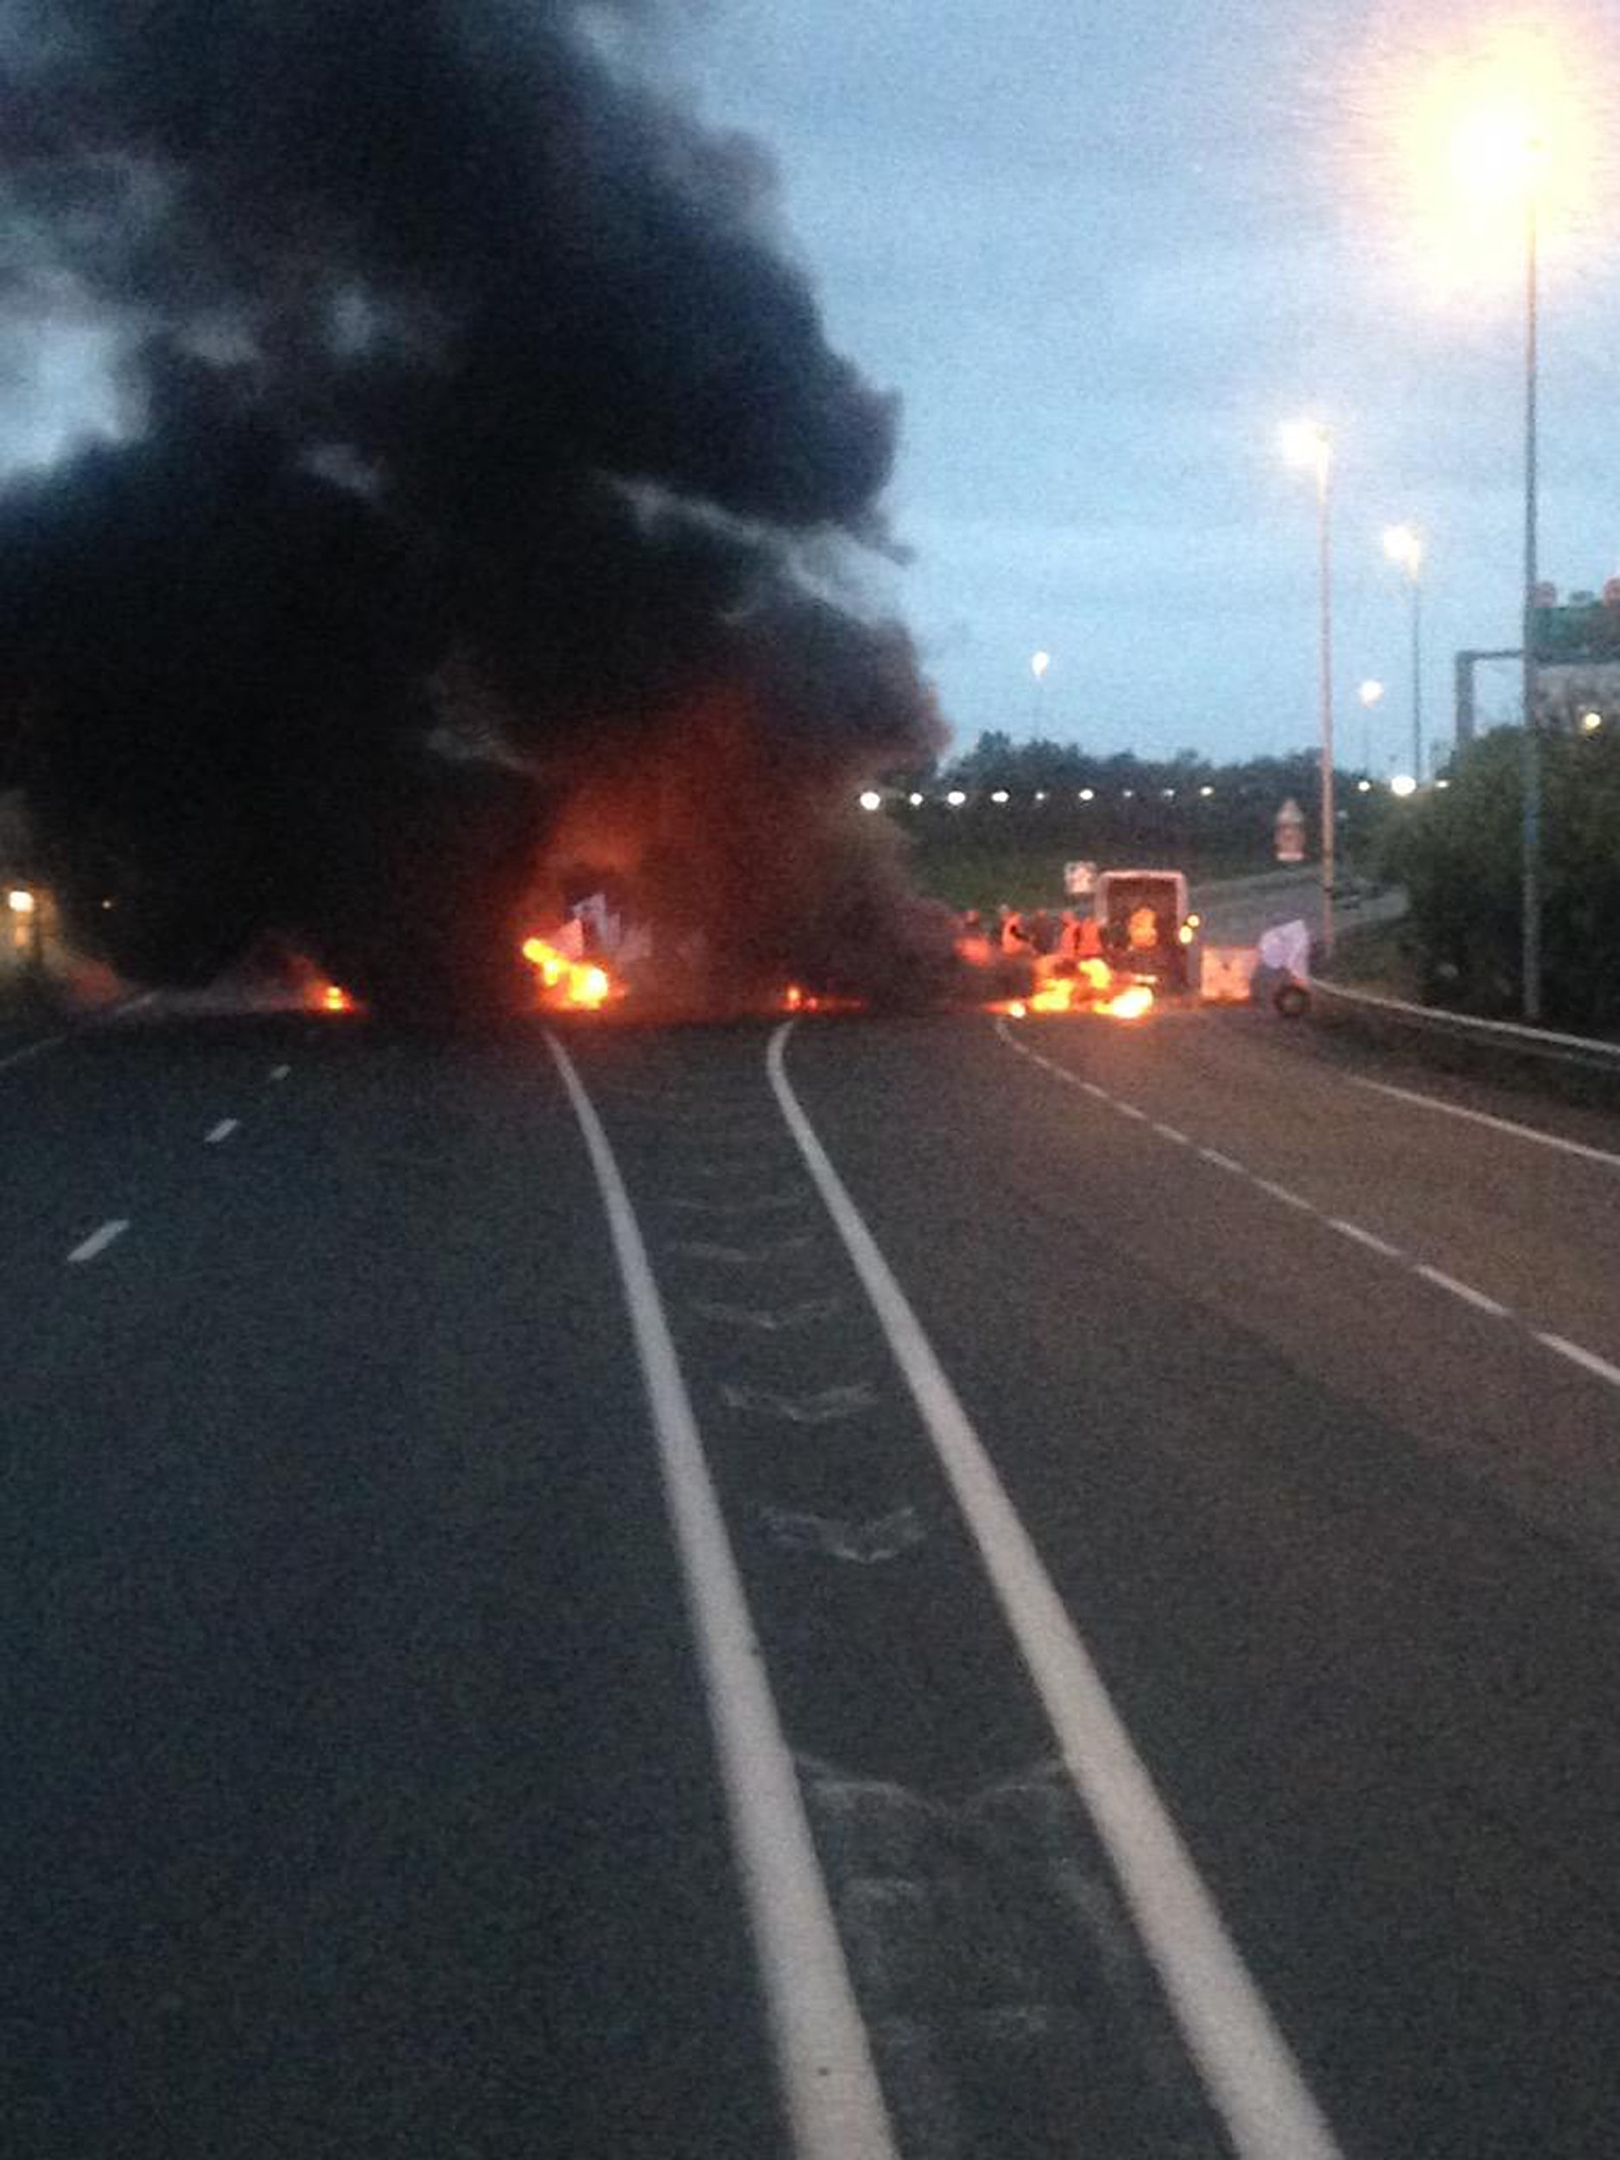 Burning blockade as French ferry workers strike in Calais. Picture from @chriscary180605